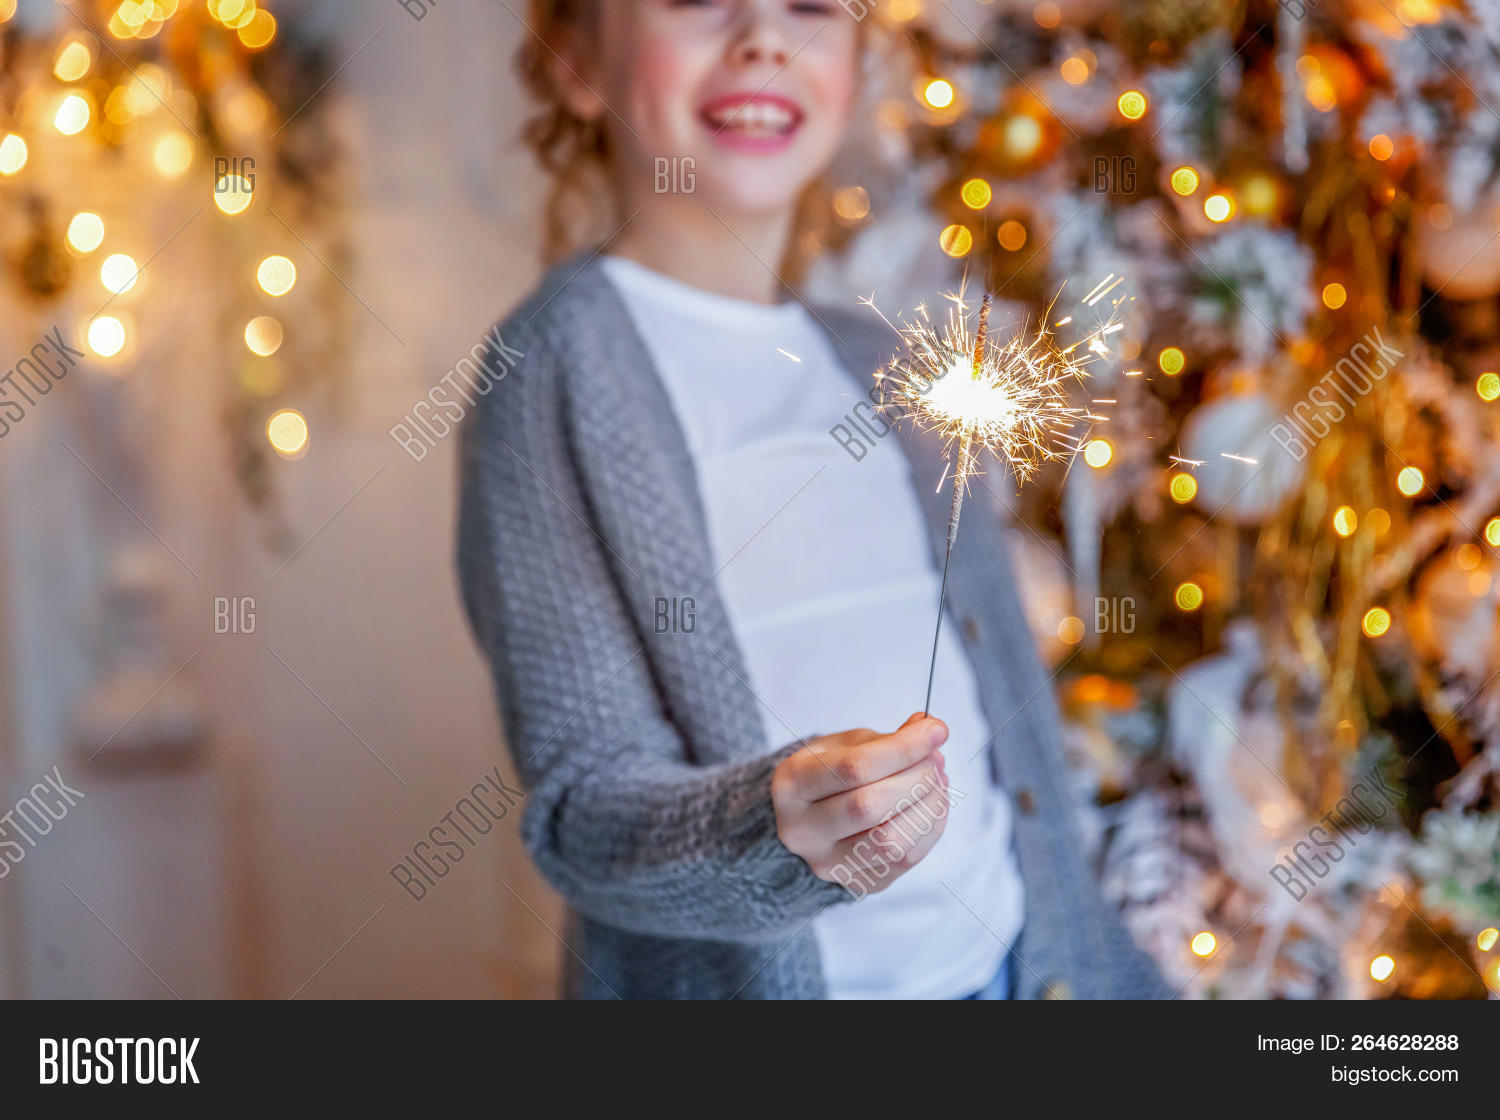 adorn,anticipation,box,celebrate,celebration,child,childhood,christmas,daughter,december,decor,decorate,decoration,dreamy,eve,event,family,fantasy,festive,fir,garland,gift,girl,happy,holding,holiday,home,indoors,interior,kid,lifestyle,little,magic,merry,new,noel,present,rejoice,room,season,seasonal,sparkler,surprise,tradition,tree,winter,x-mas,xmas,year,young